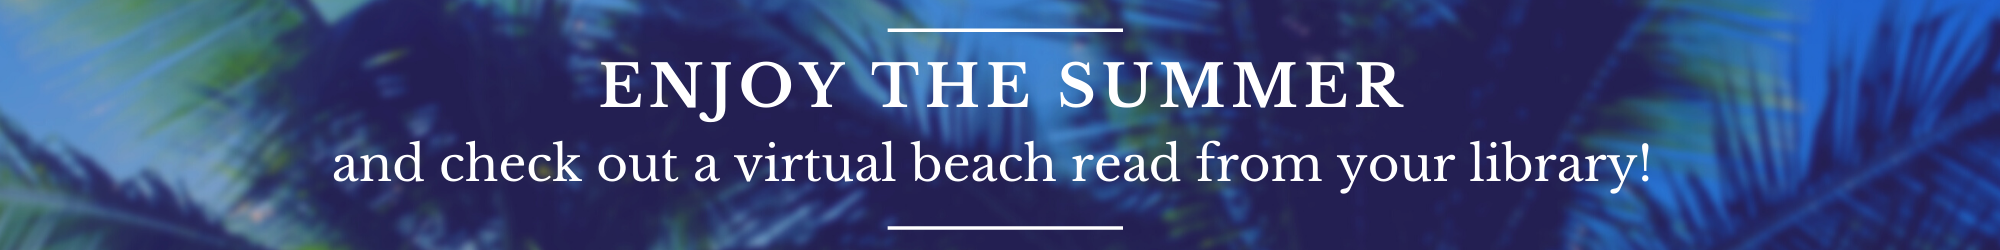 Enjoy the summer, and check out a virtual beach read from your library!